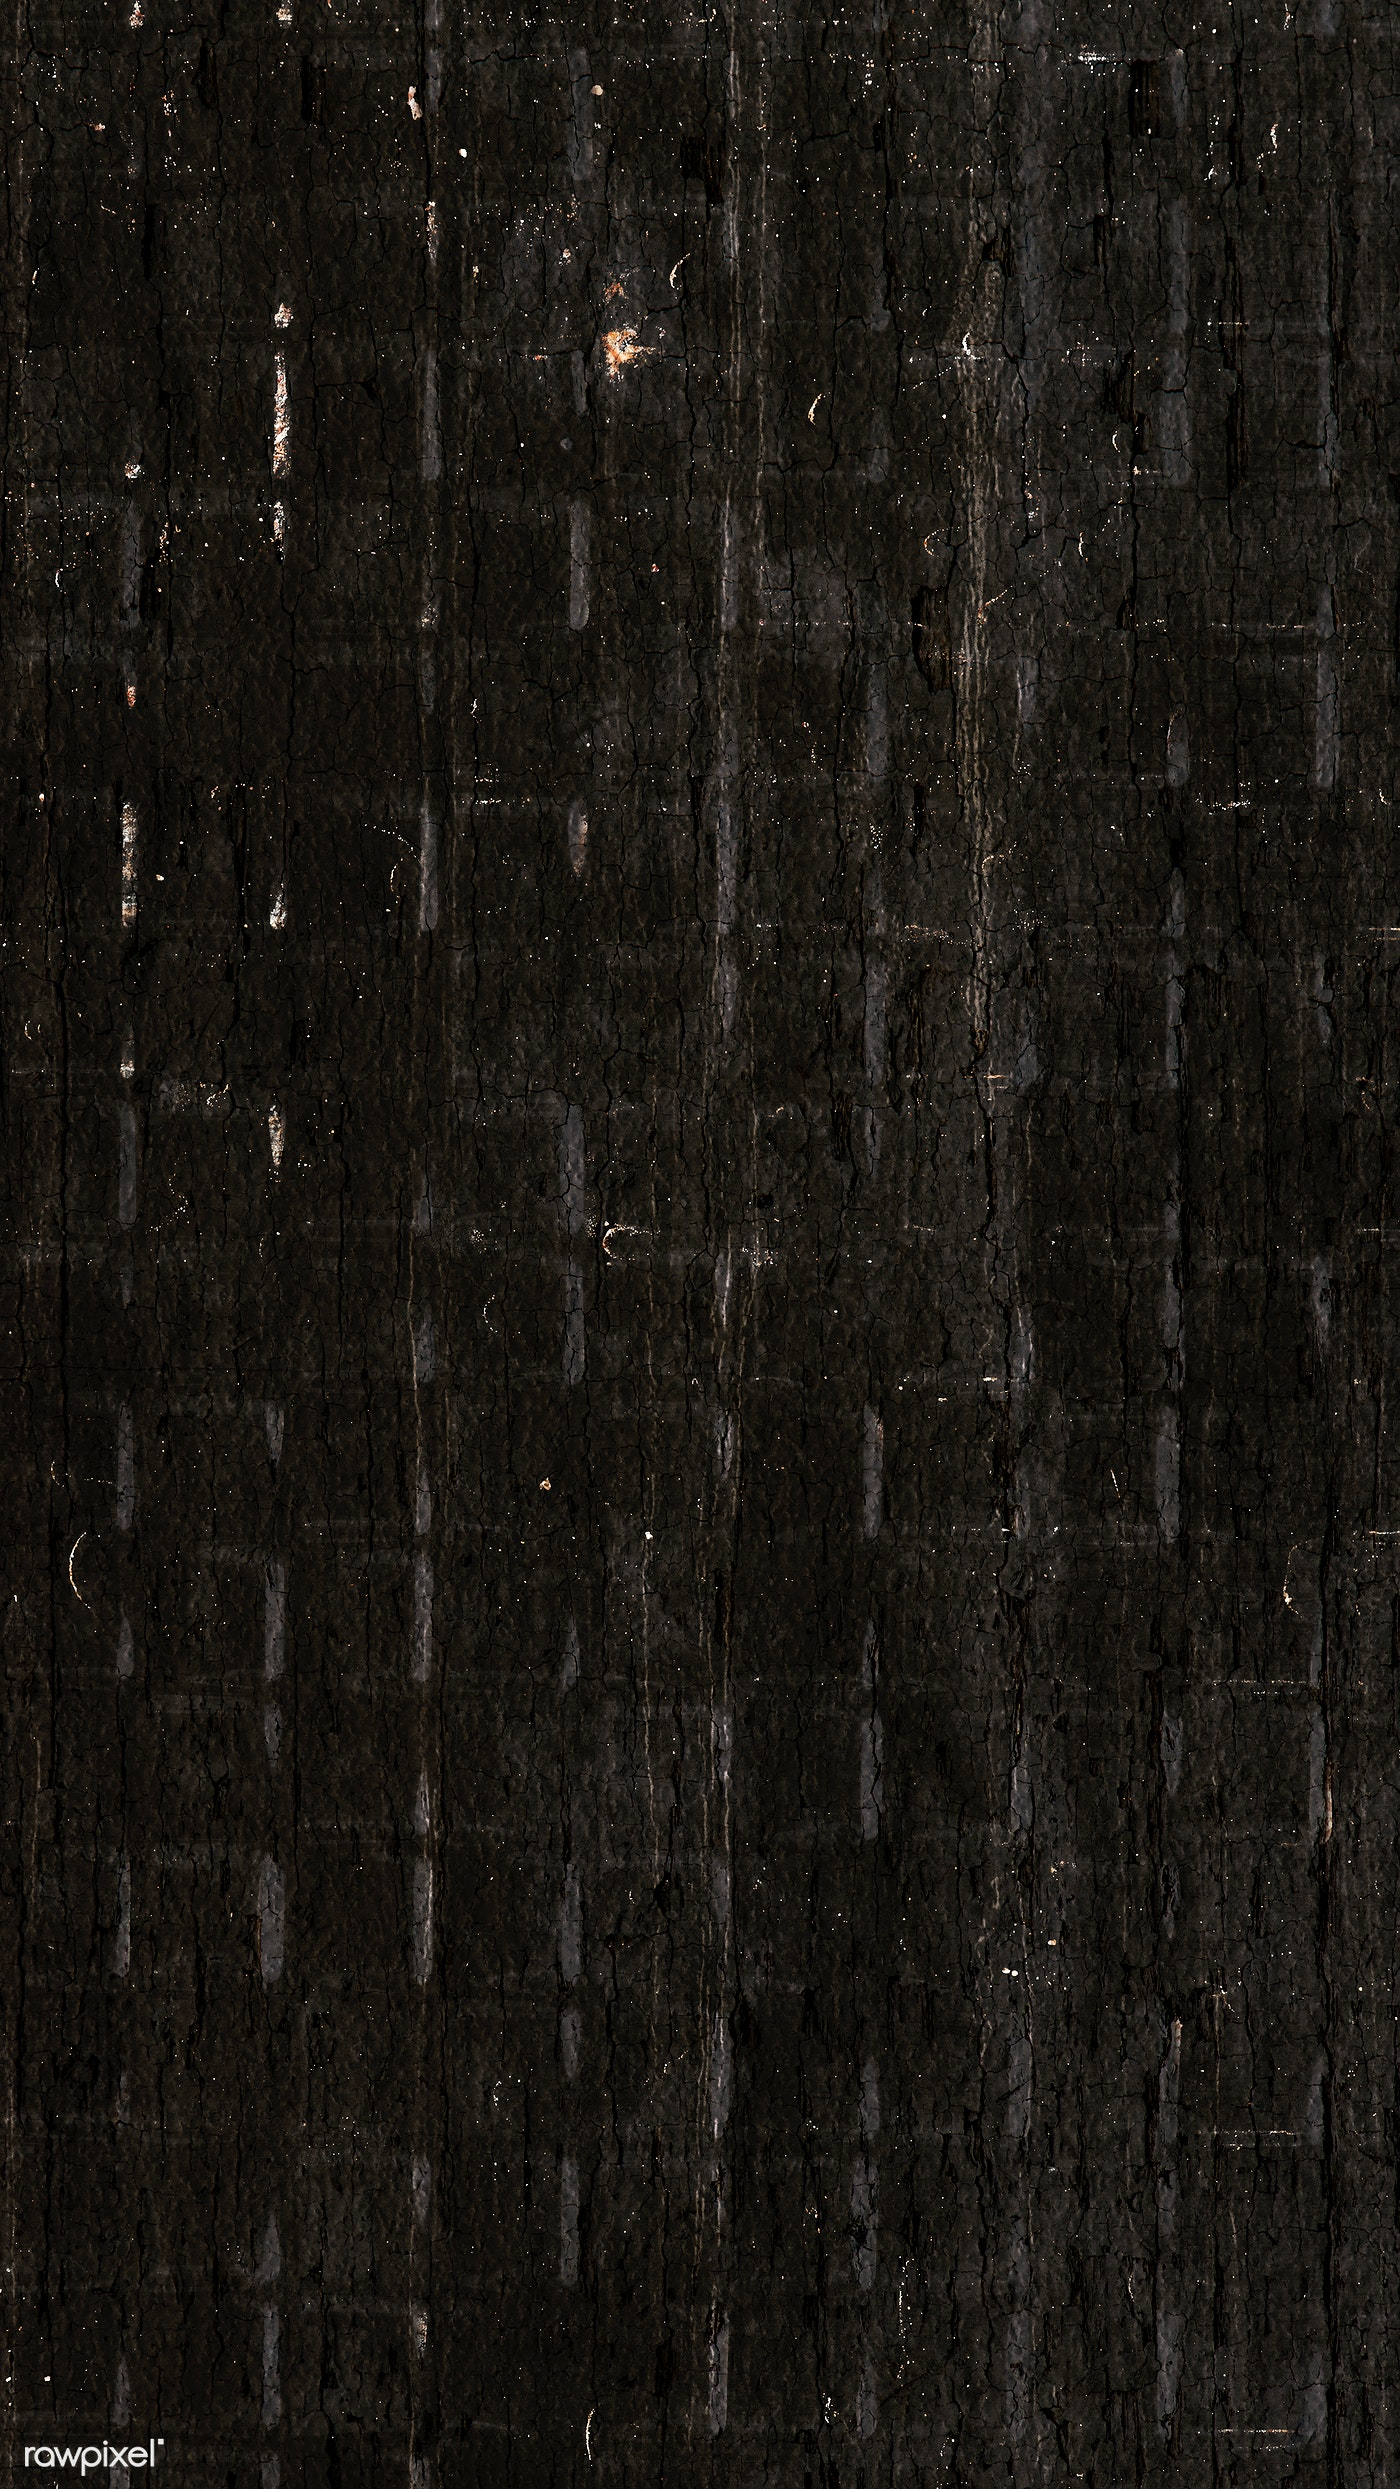 Black Wooden Textured Story Background Free Photo 2252136